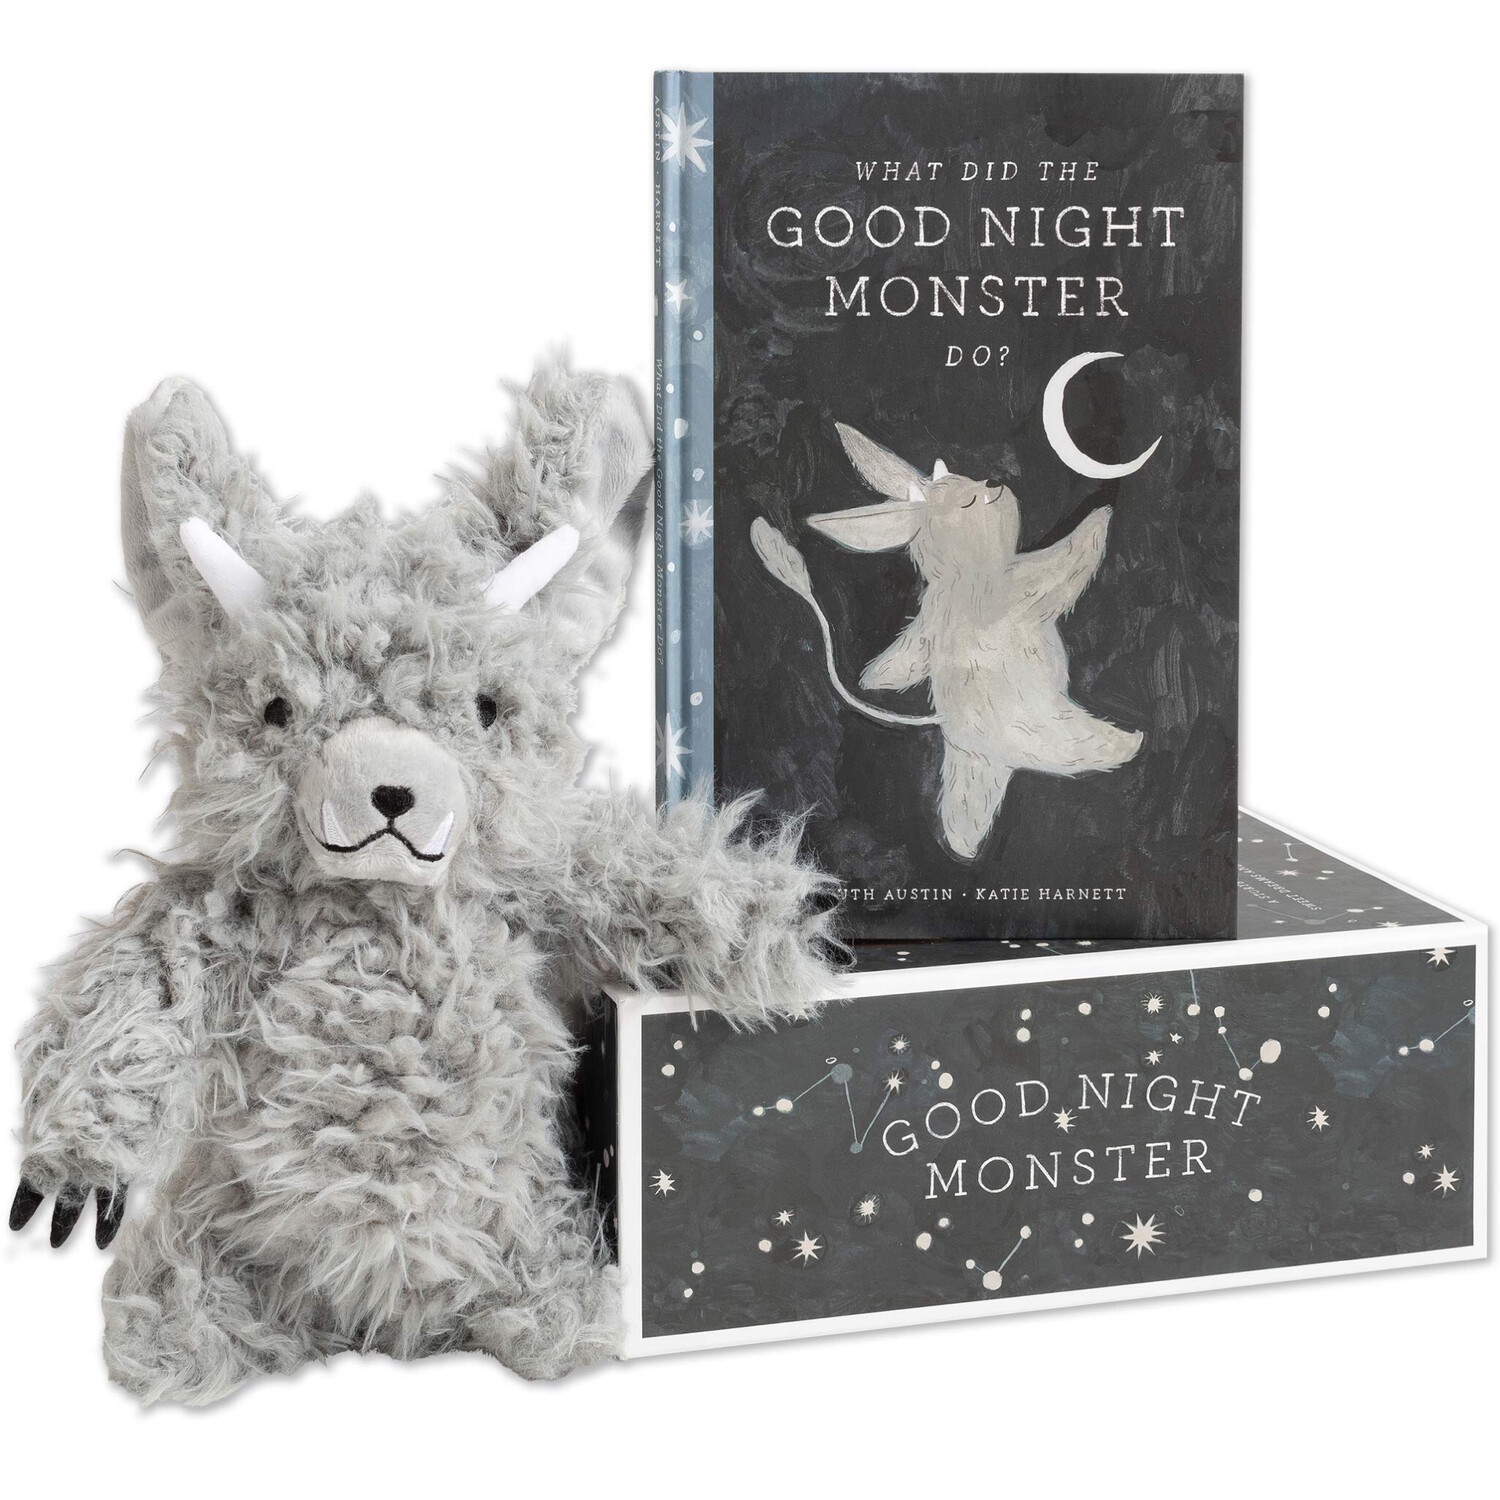 Goodnight Monster Story Book And Plush